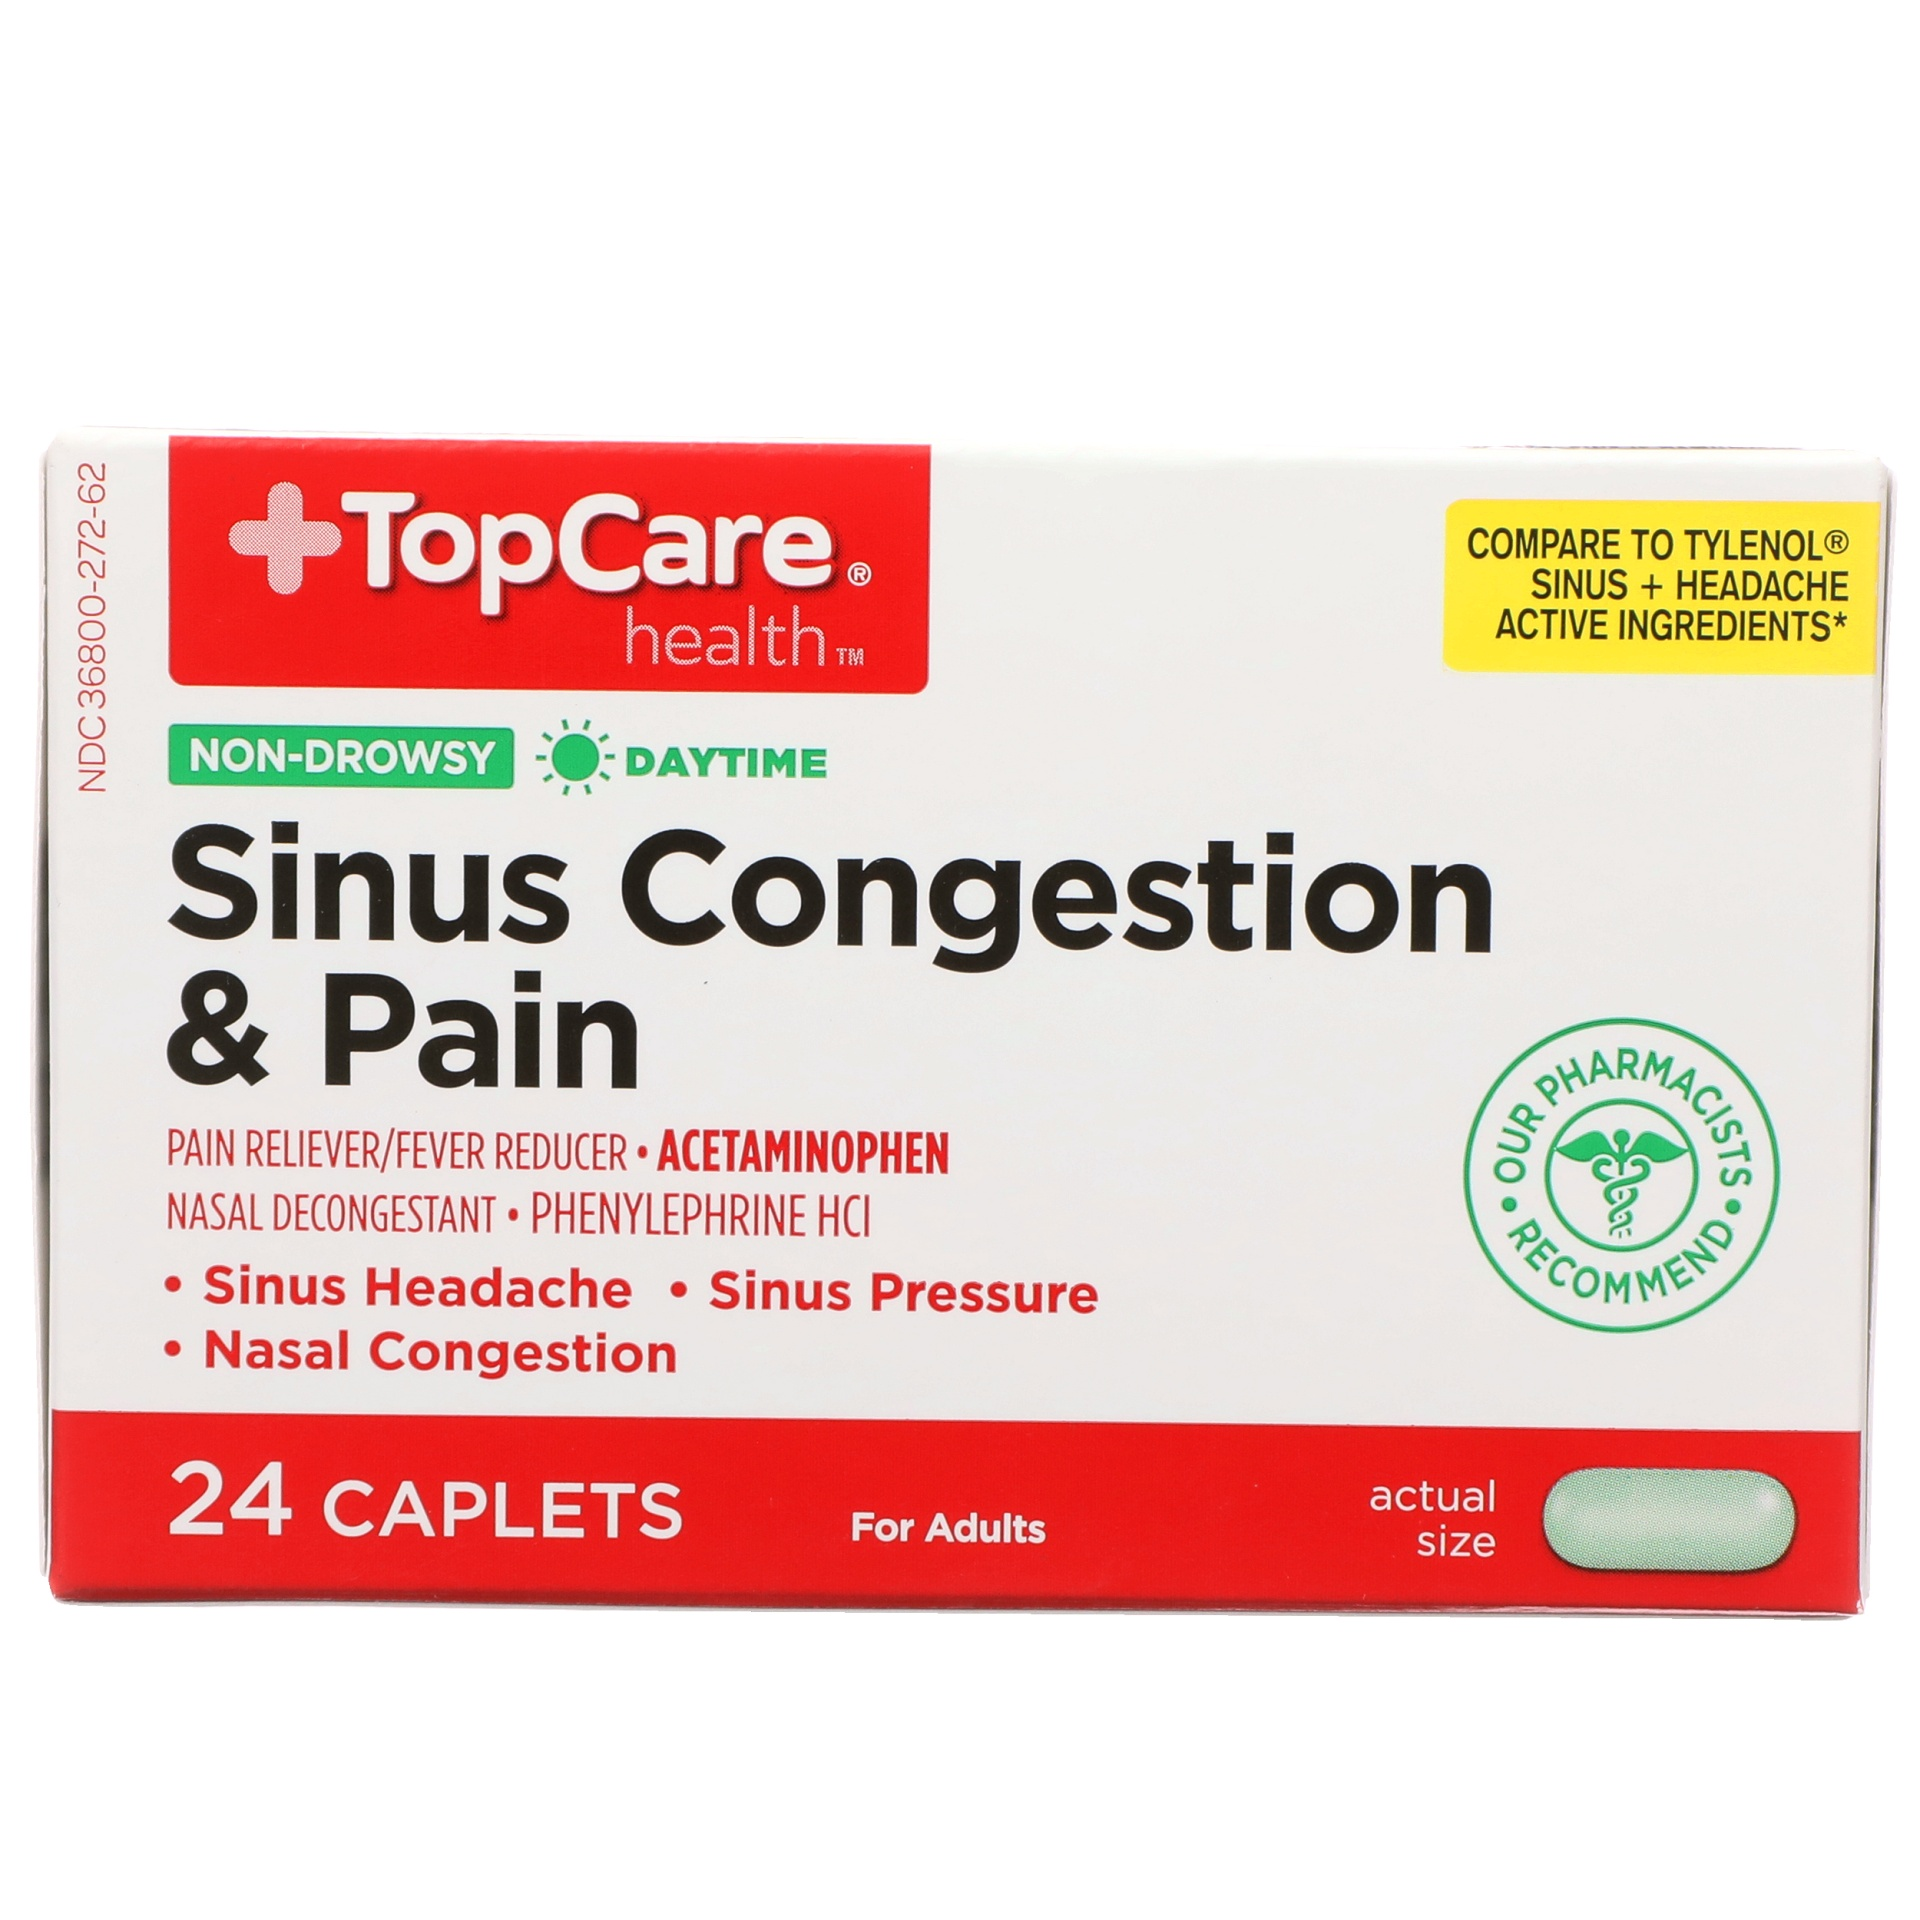 slide 1 of 6, TopCare Sinus Congestion & Pain Daytime Non-drowsy Pain Reliever/fever Reducer - Acetaminophen, Nasal Decongestant - Phenylephrine Hcl Caplets,